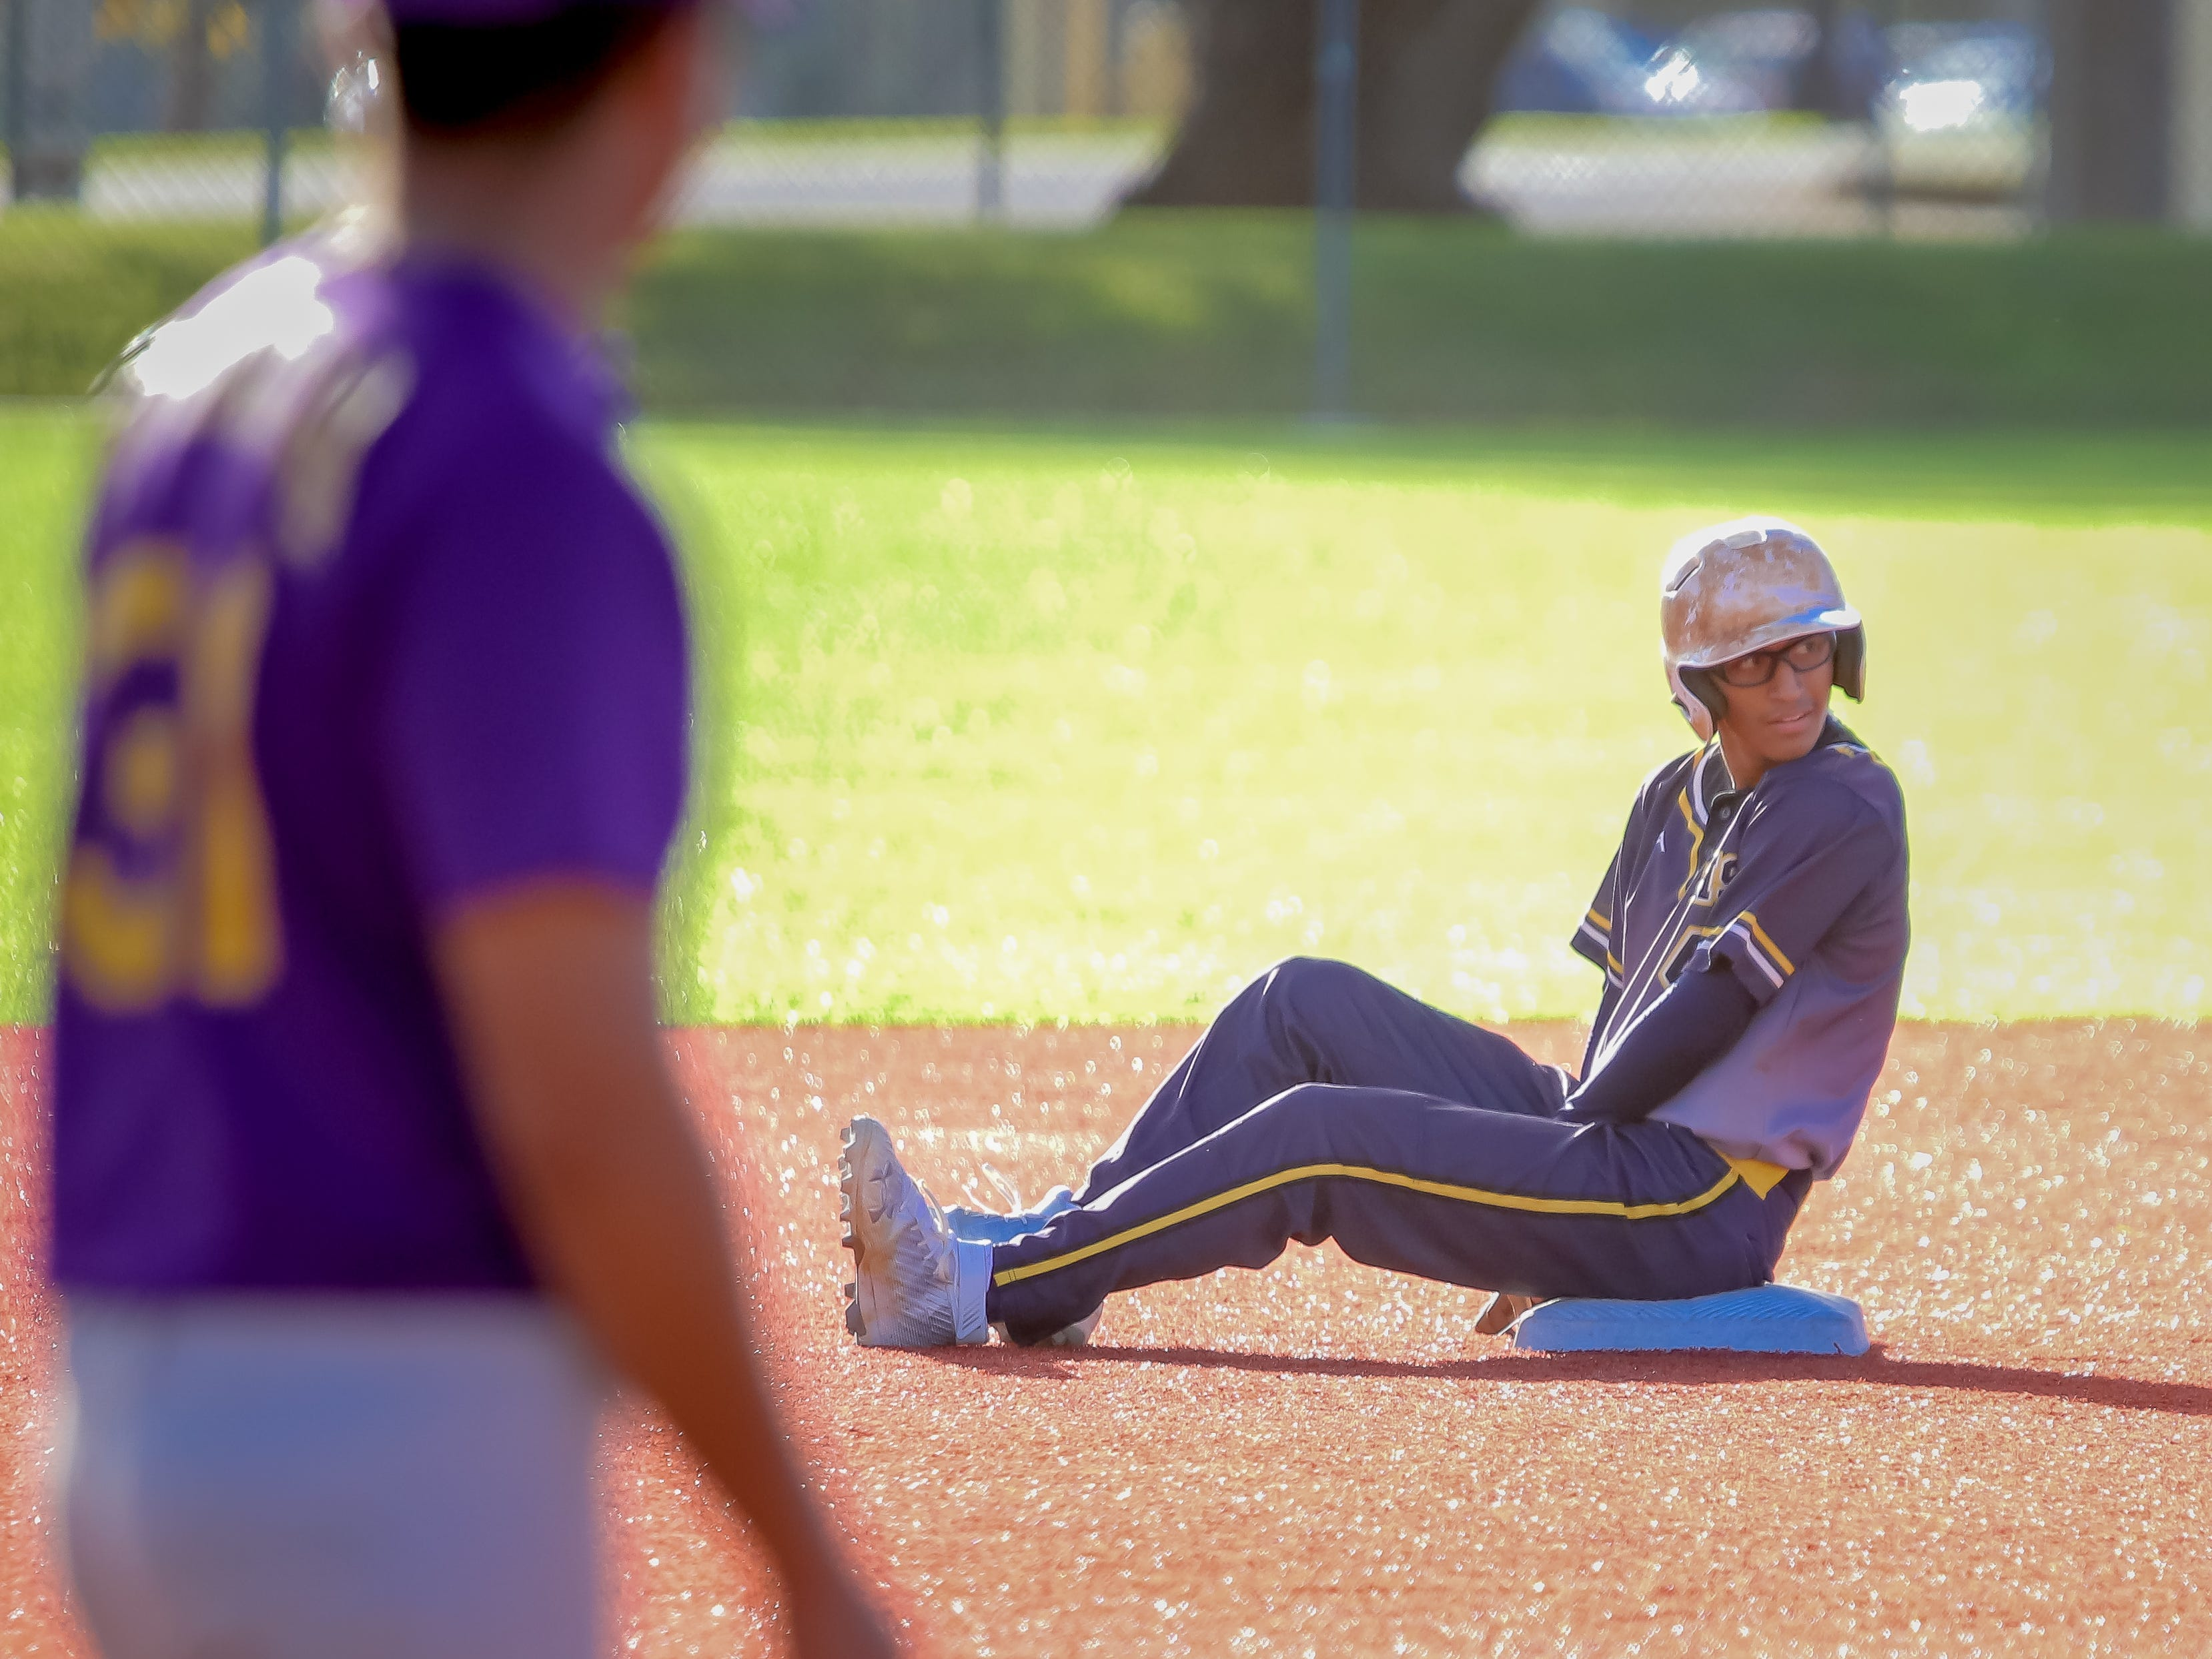 Ruben Ramirez of Guam High sits on second base after an attempt to steal.